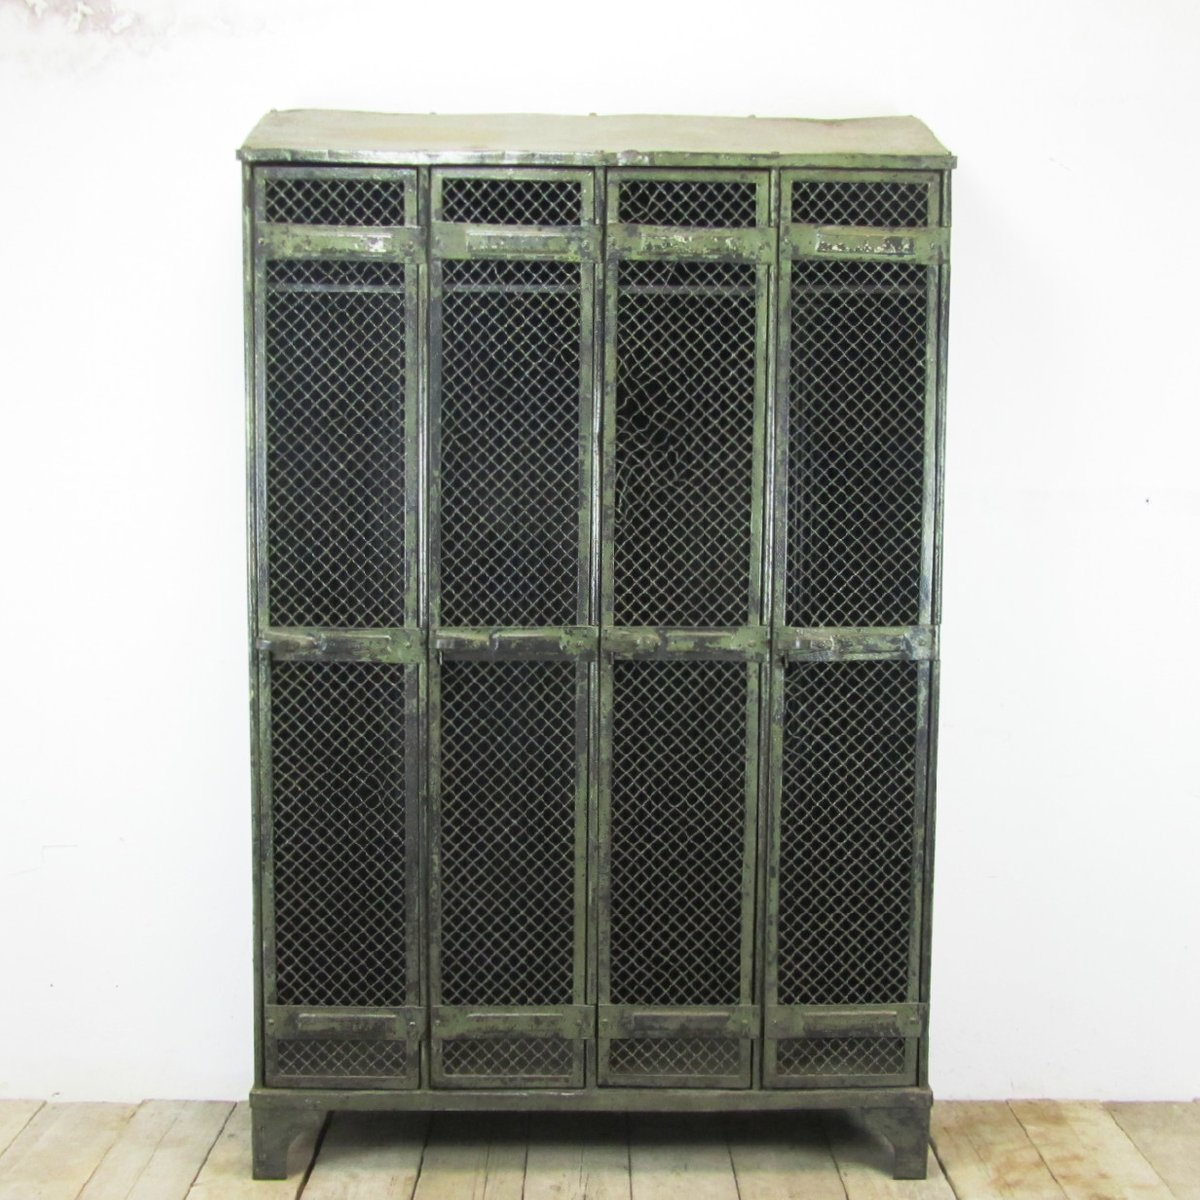 vestiaire industriel vintage 4 portes de strafor 1930s en vente sur pamono. Black Bedroom Furniture Sets. Home Design Ideas